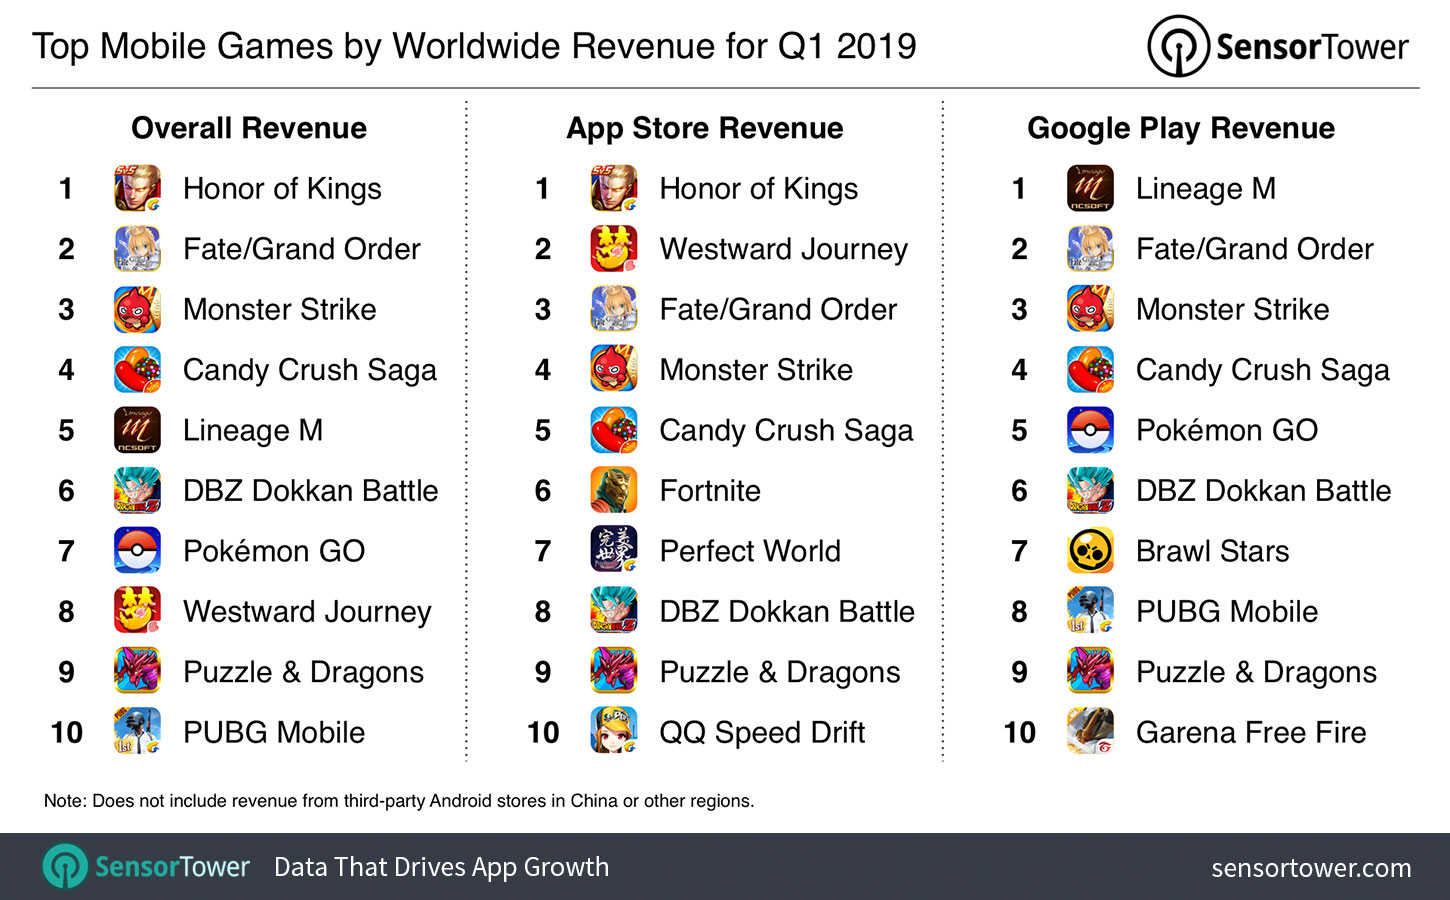 The Top Mobile Apps, Games, and Publishers of Q1 2019